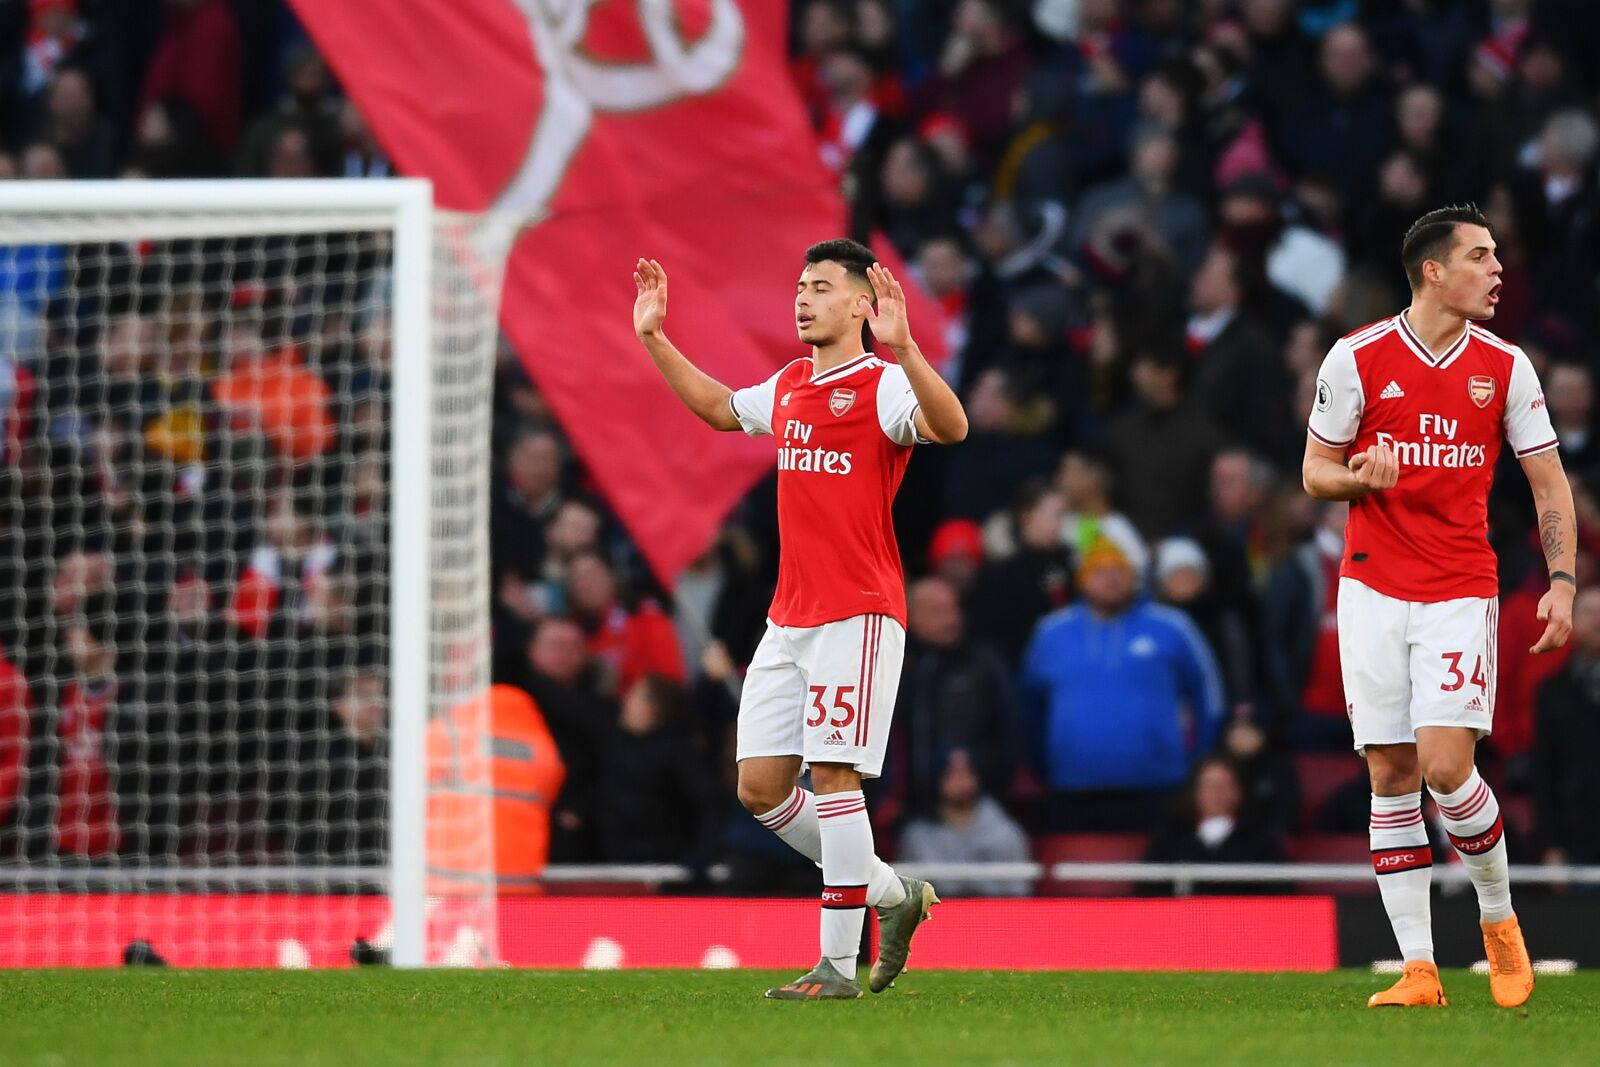 Arsenal: Whatever it is, Gabriel Martinelli has it